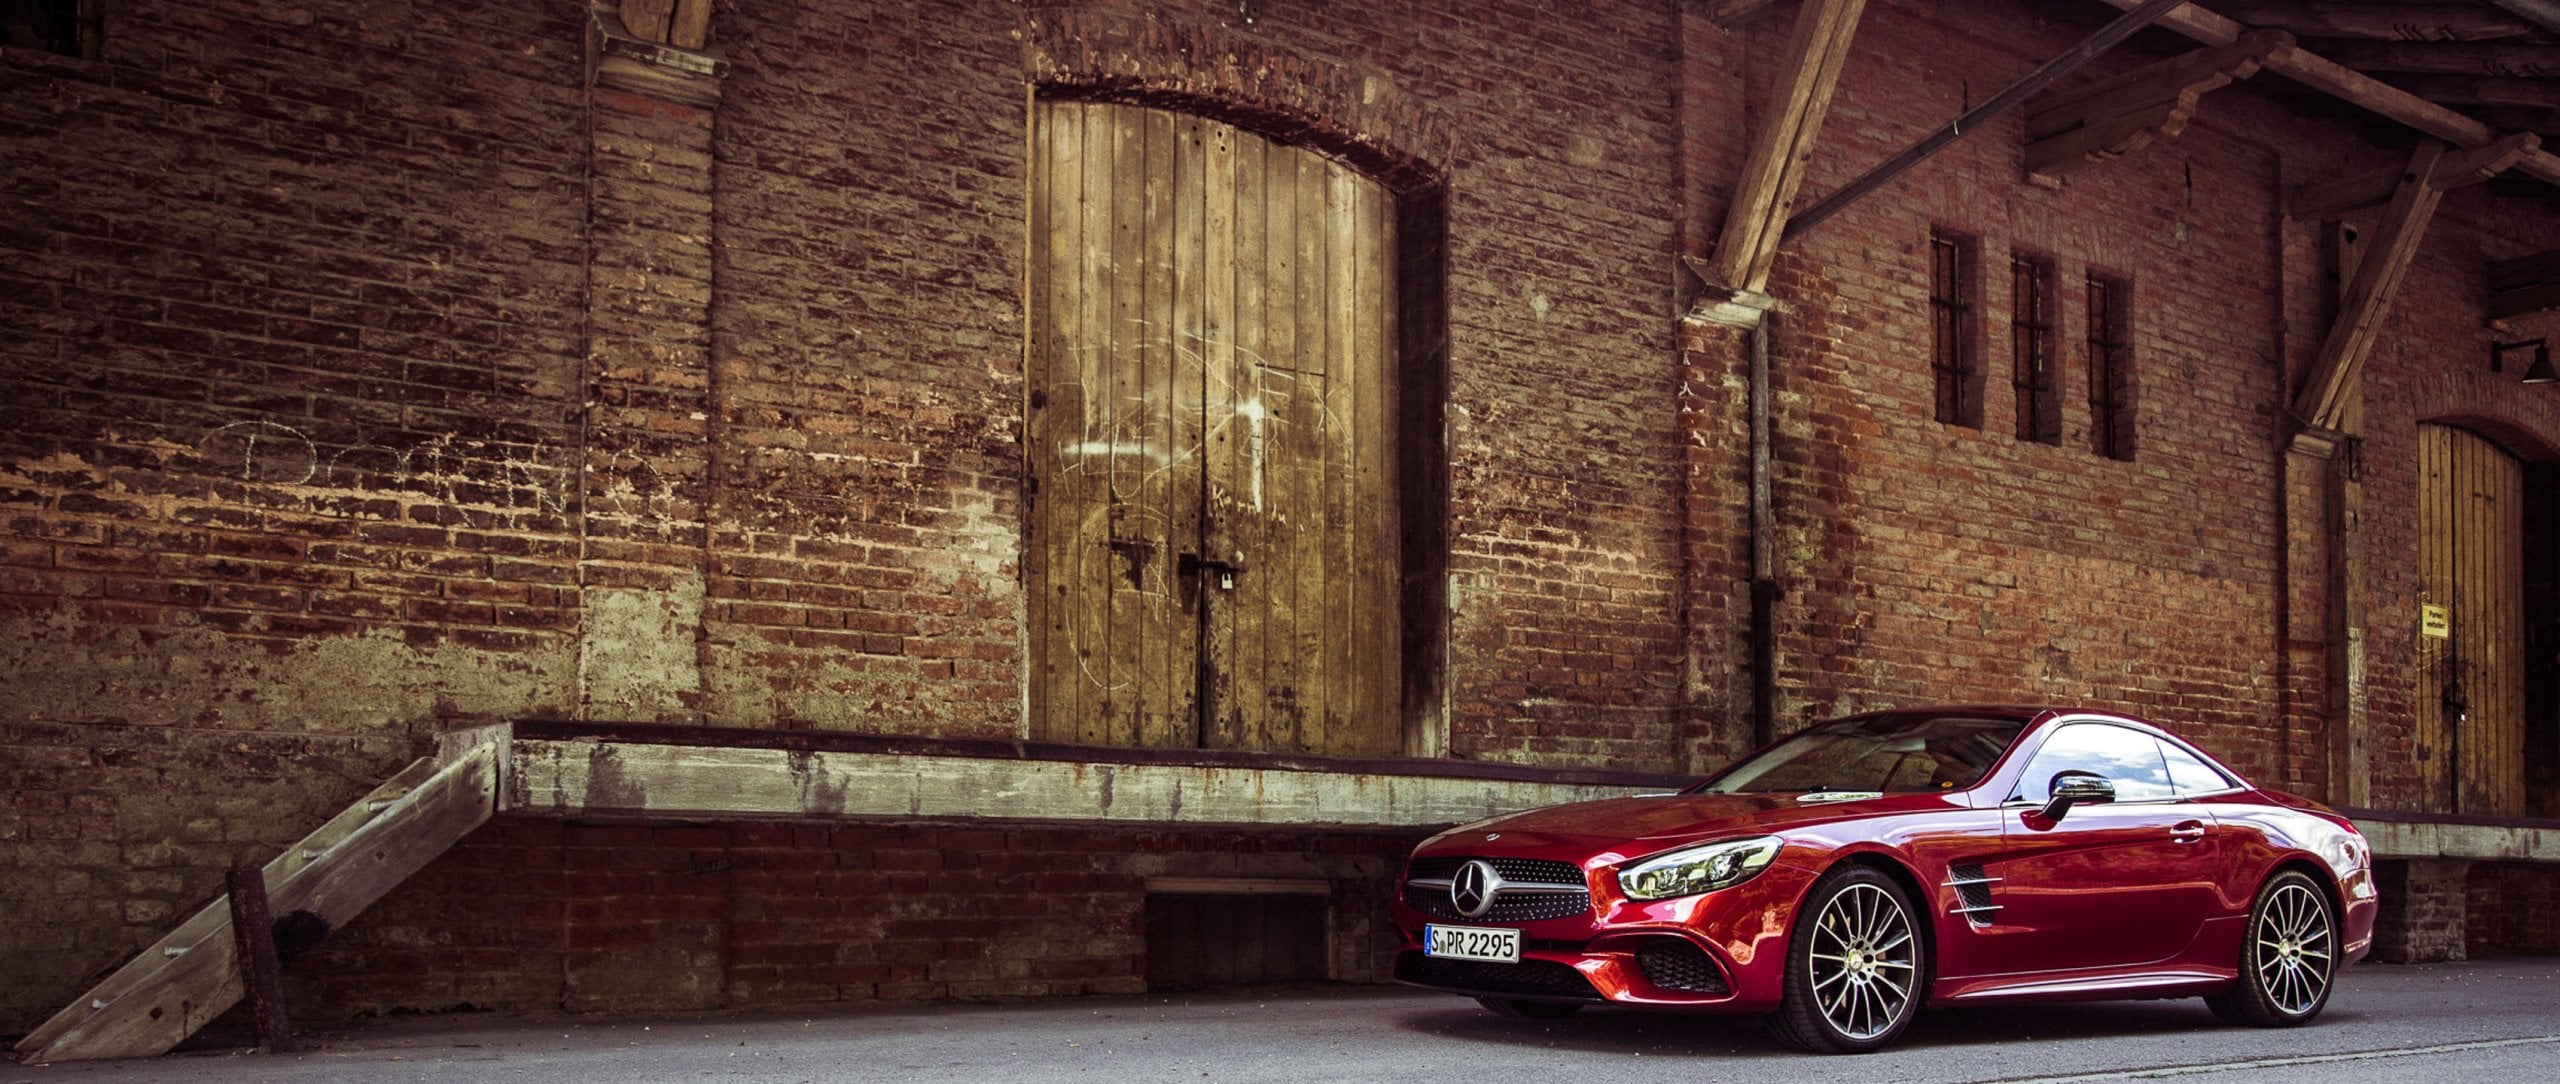 Mercedes-Benz SL (R 231): side view of a red model.